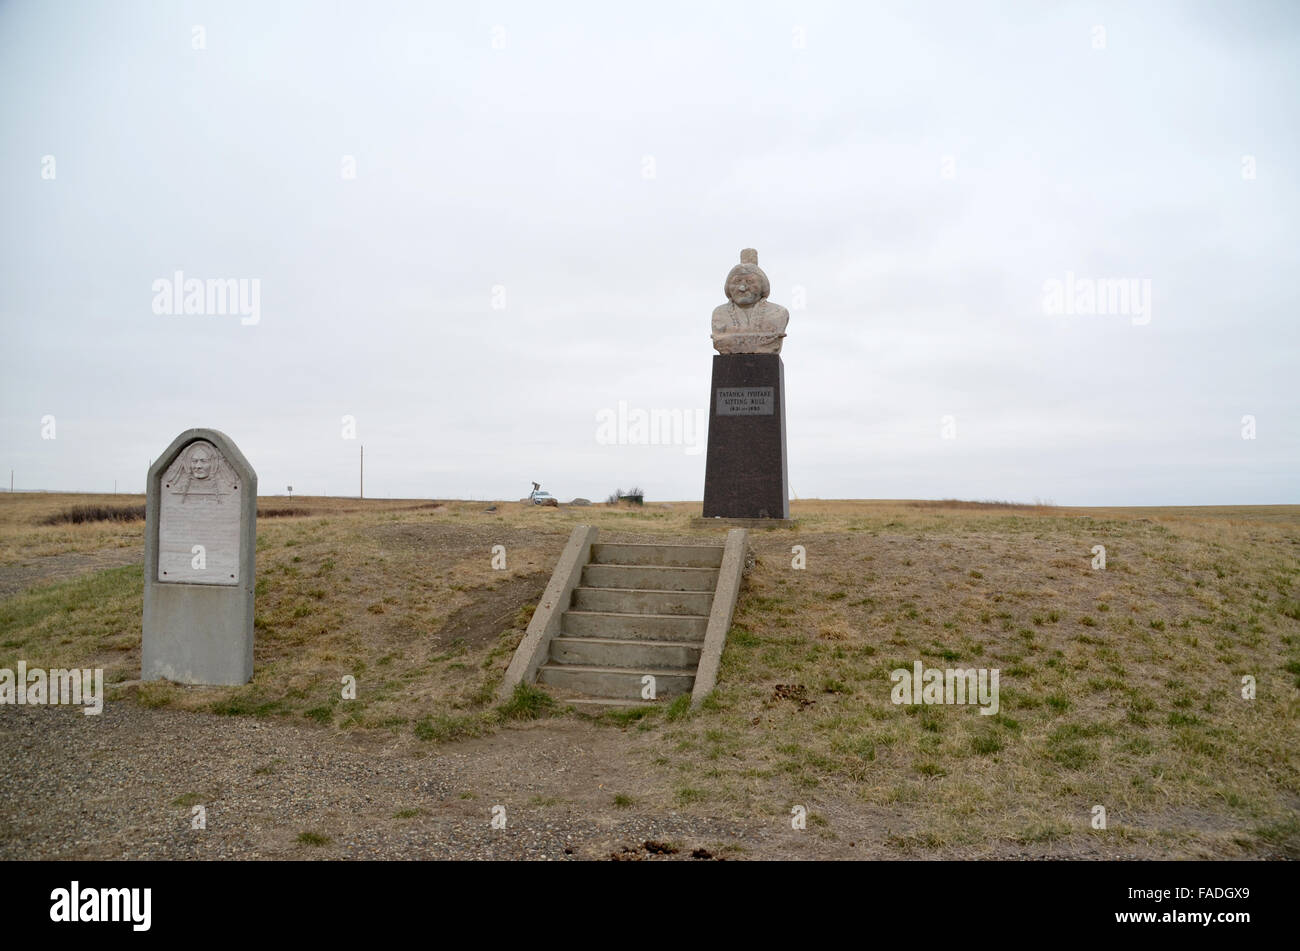 South Dakota, USA. 8th Apr, 2015. The grave of Sioux chief Sitting Bull in South Dakota, USA, 8 April 2015. Sitting Stock Photo